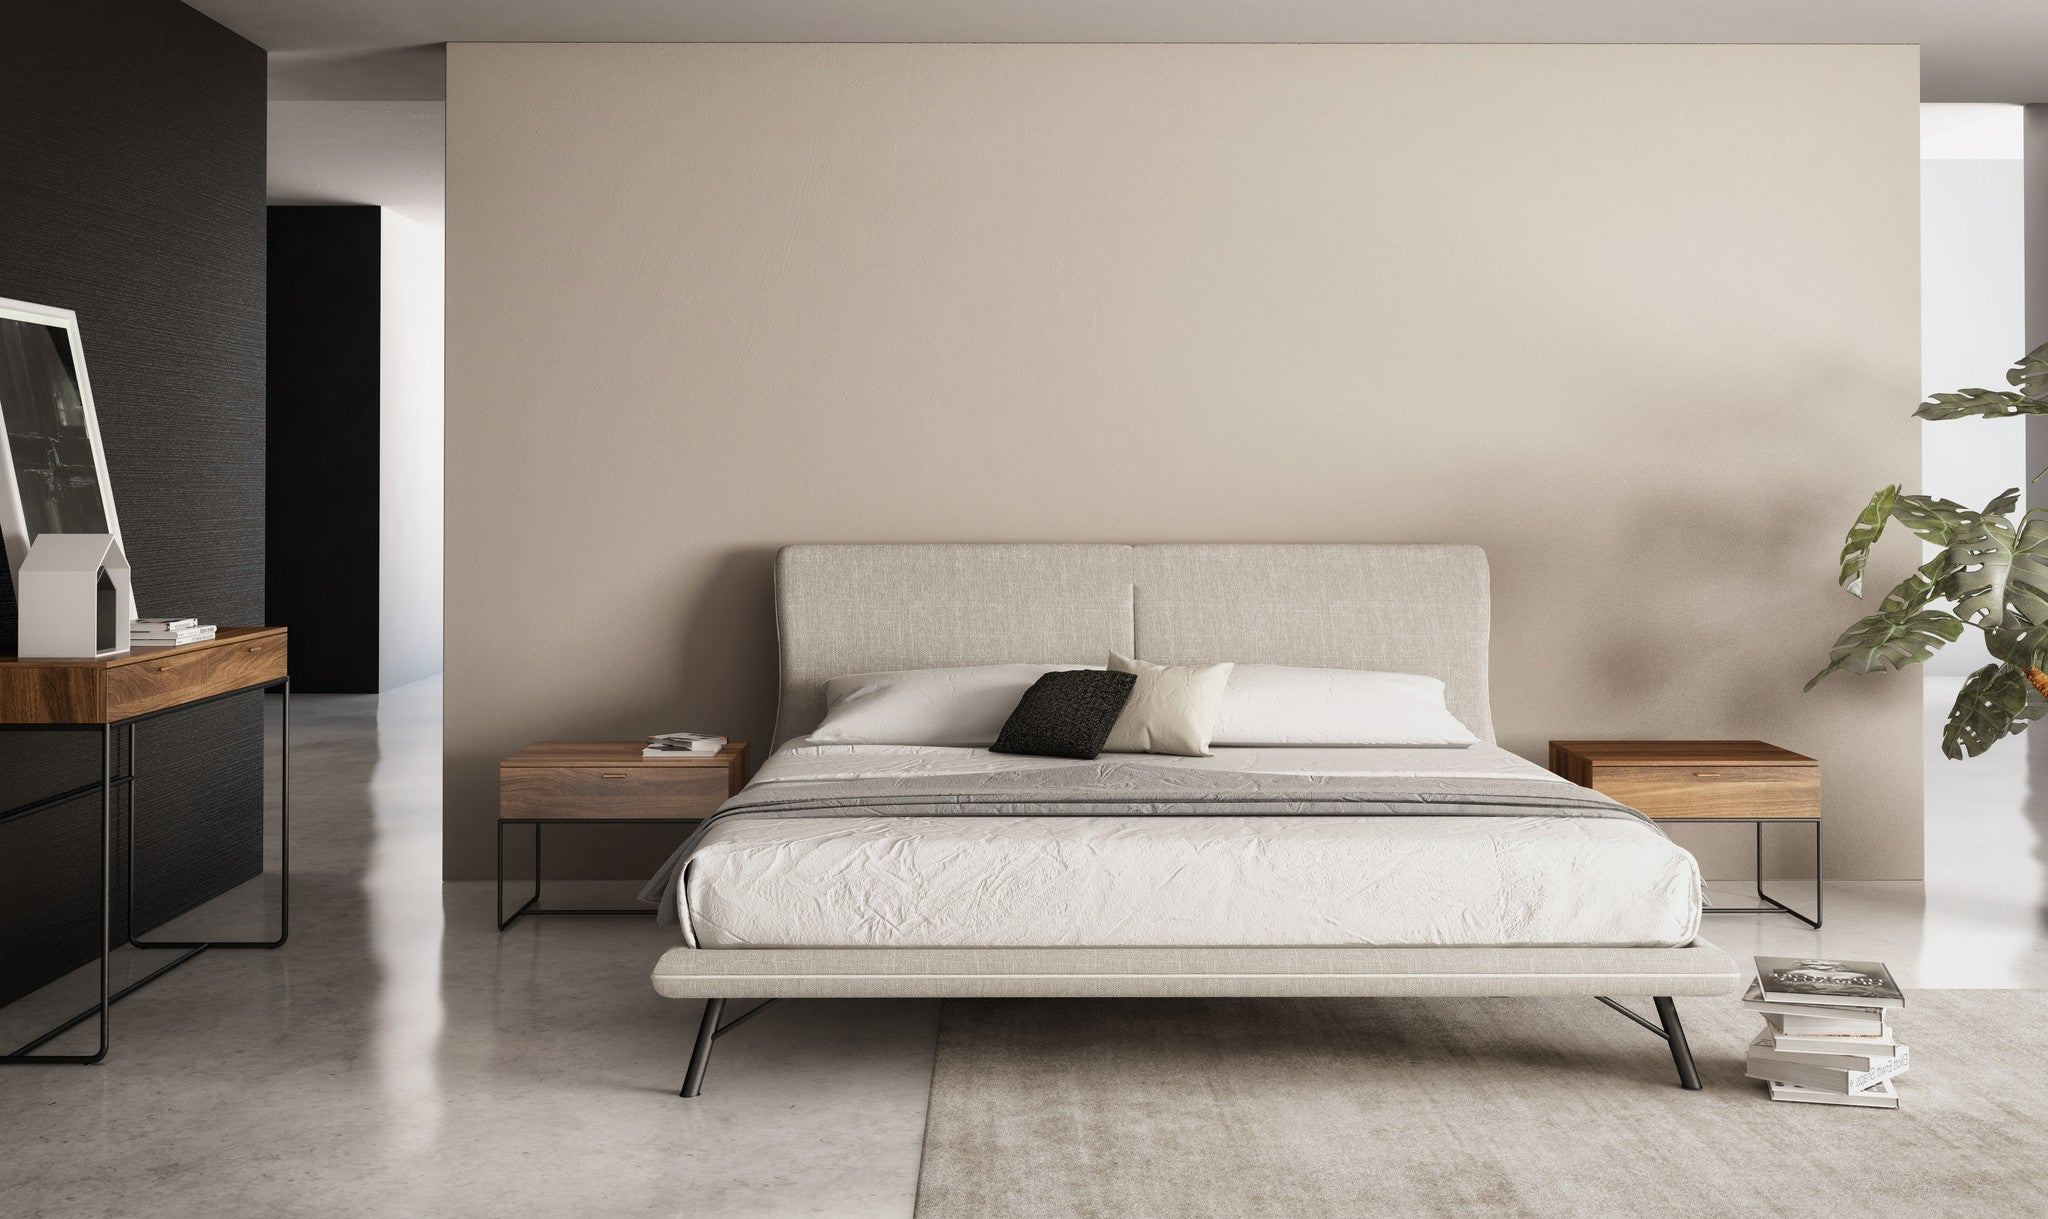 Linea Bedroom Furniture Linea Queen Bed Area Furniture For The Modern Home